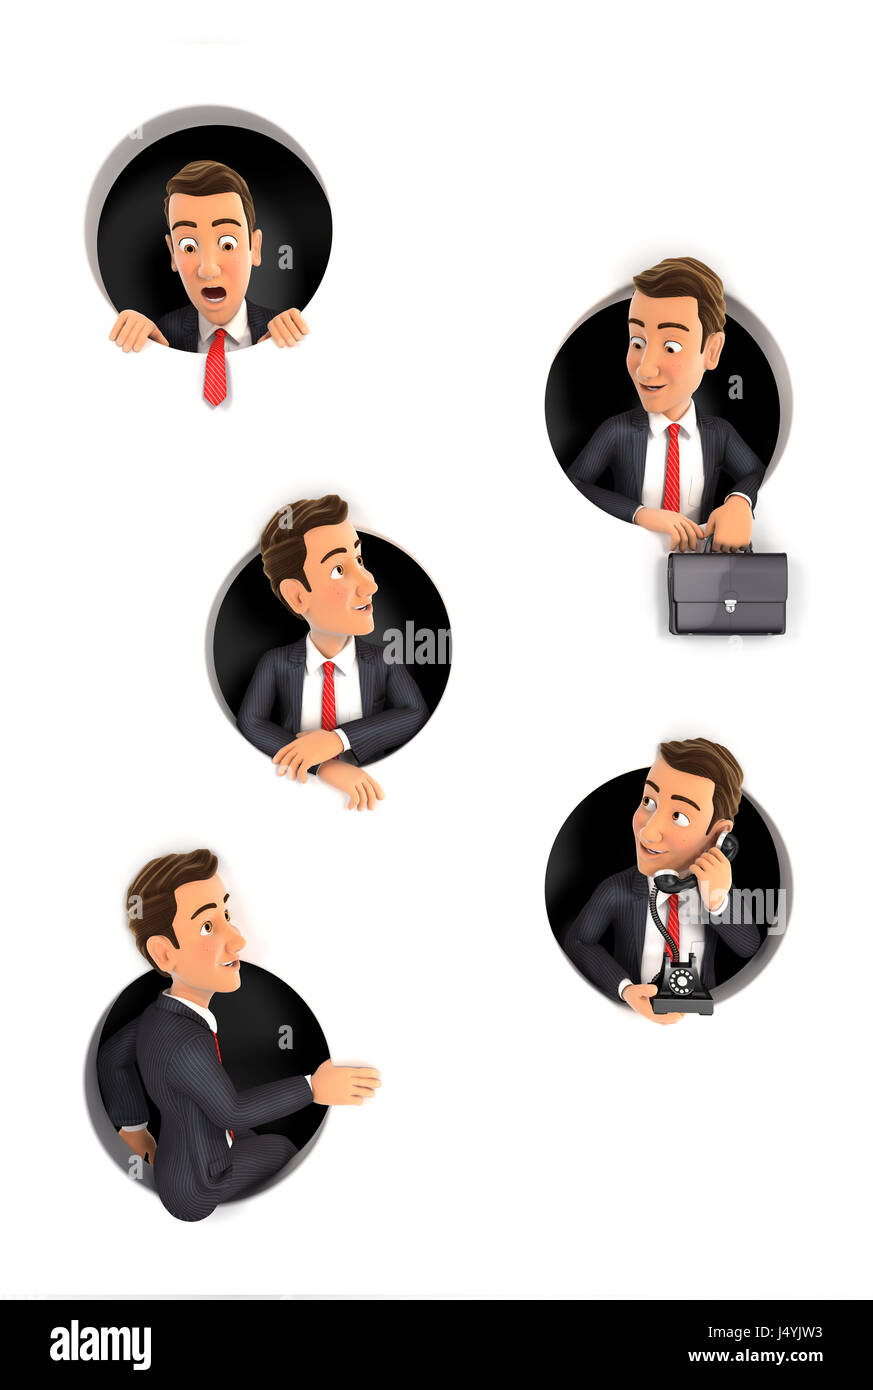 3d businessman coming through circular holes in wall, illustration with isolated white background Stock Photo